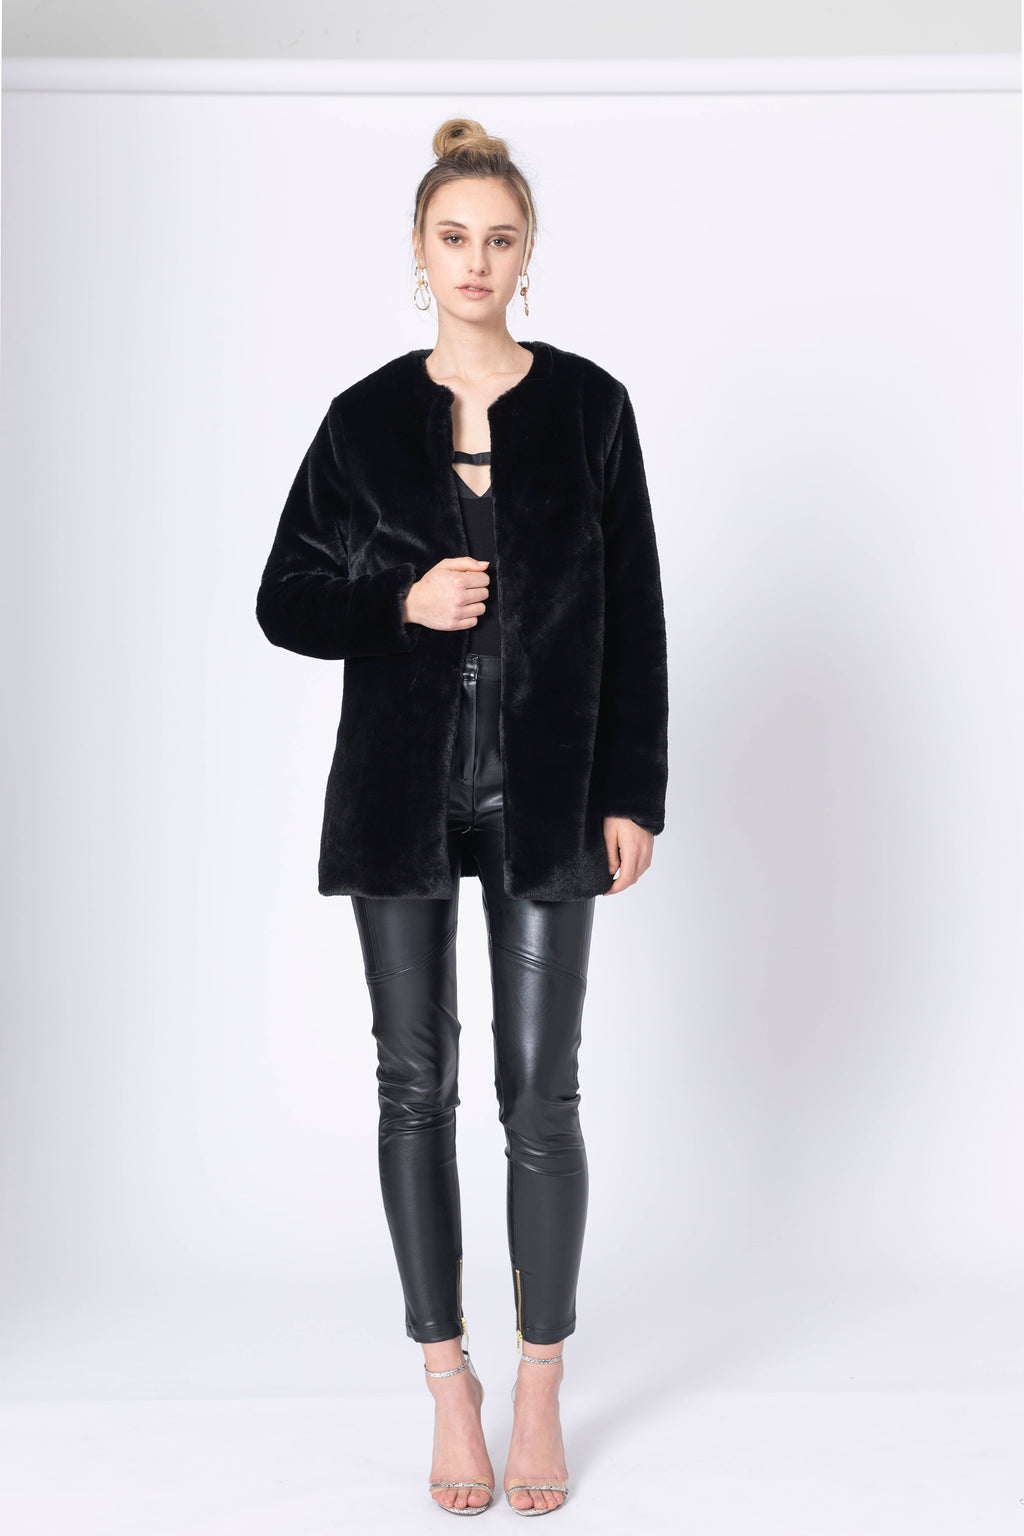 Wonderer Fur Jacket